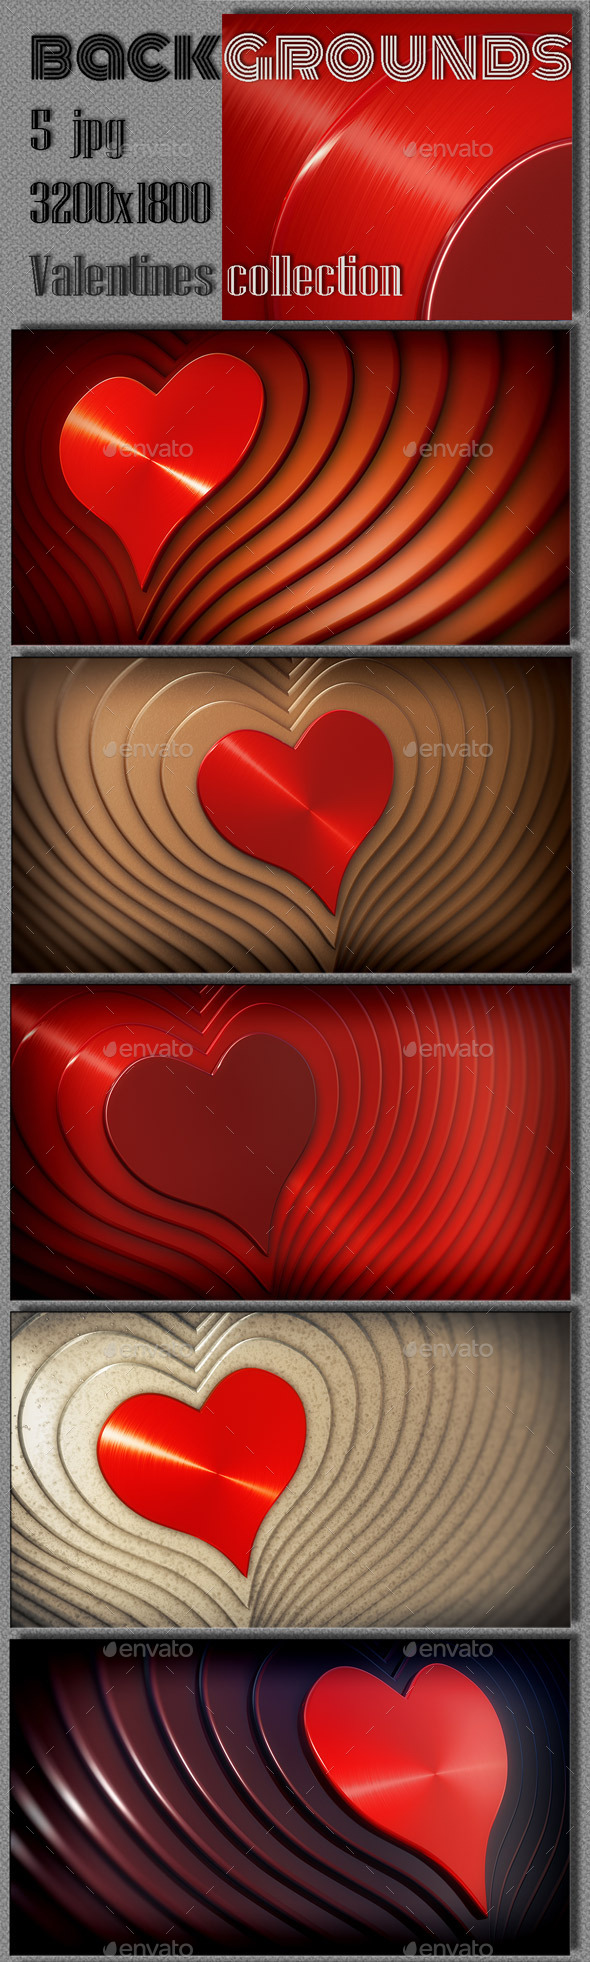 Valentine Abstract Collection